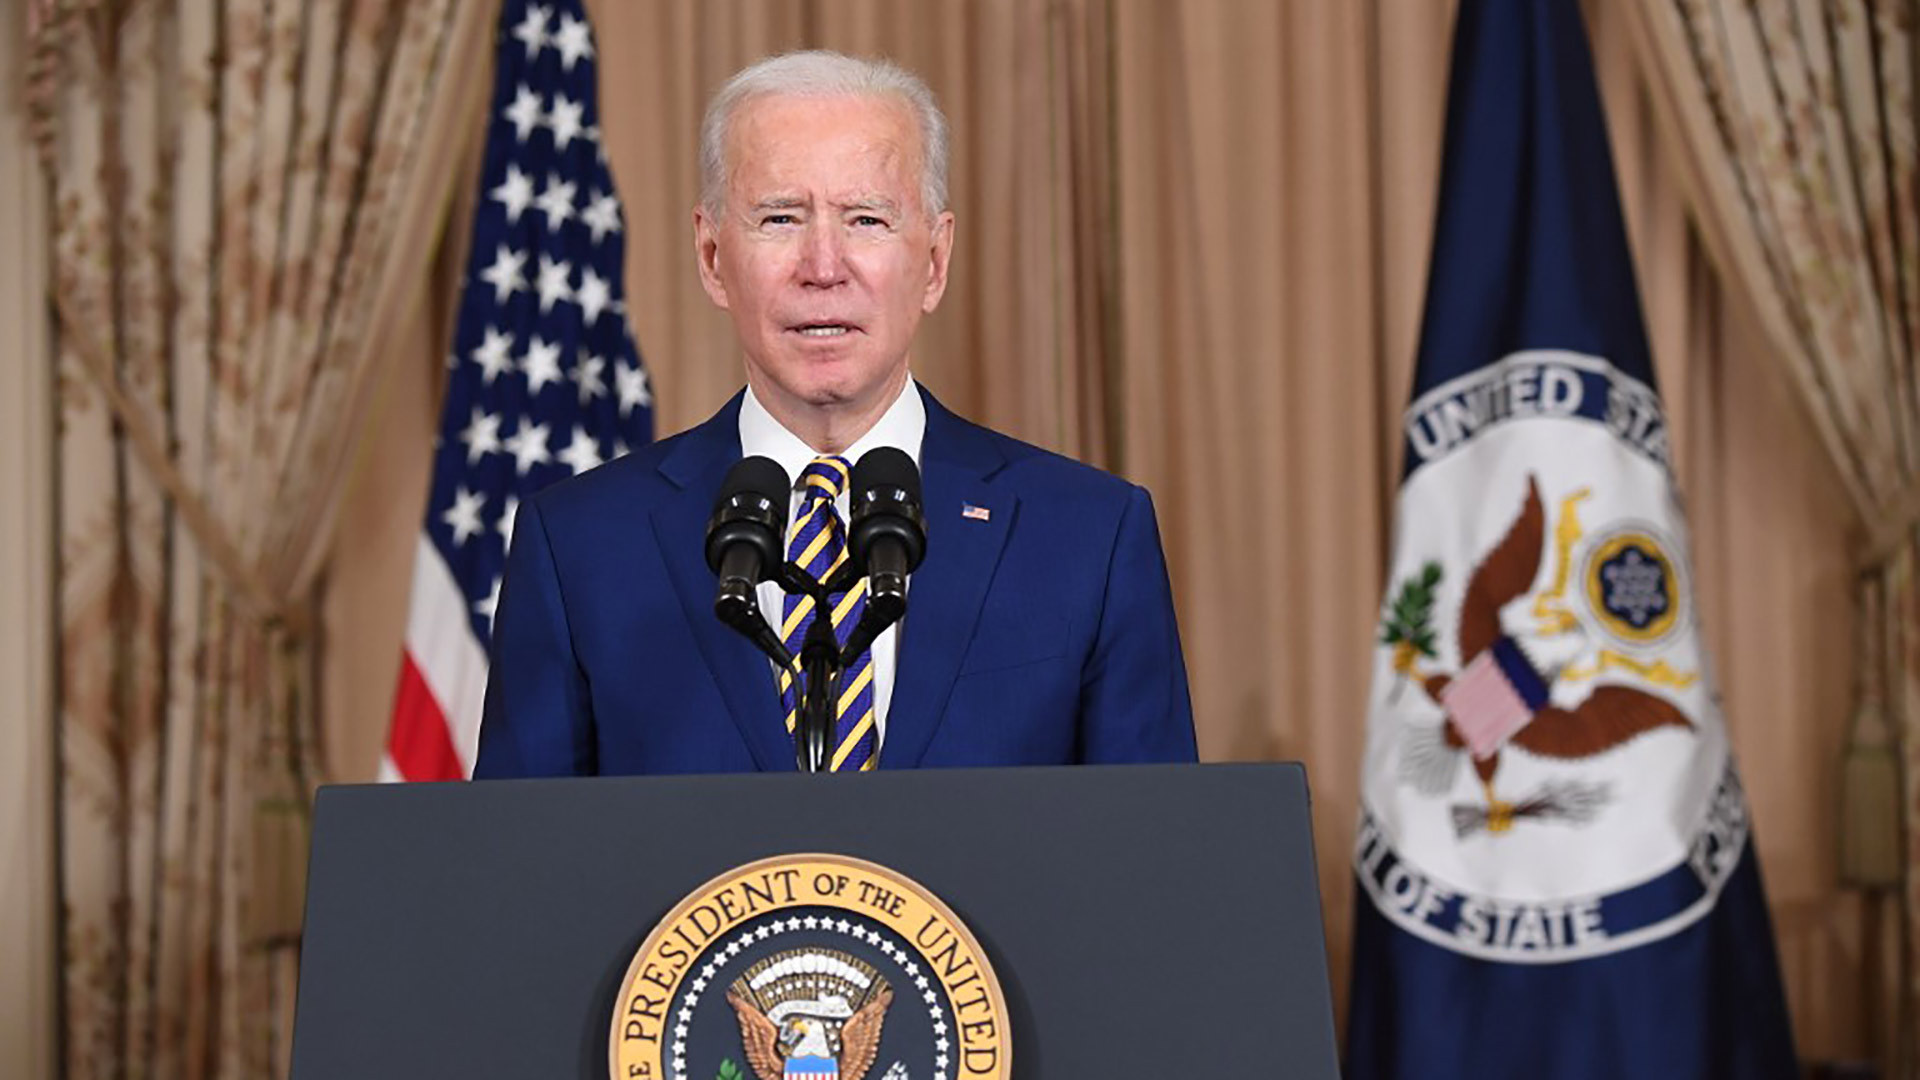 Biden says US willing to work with China 'in America's interest'